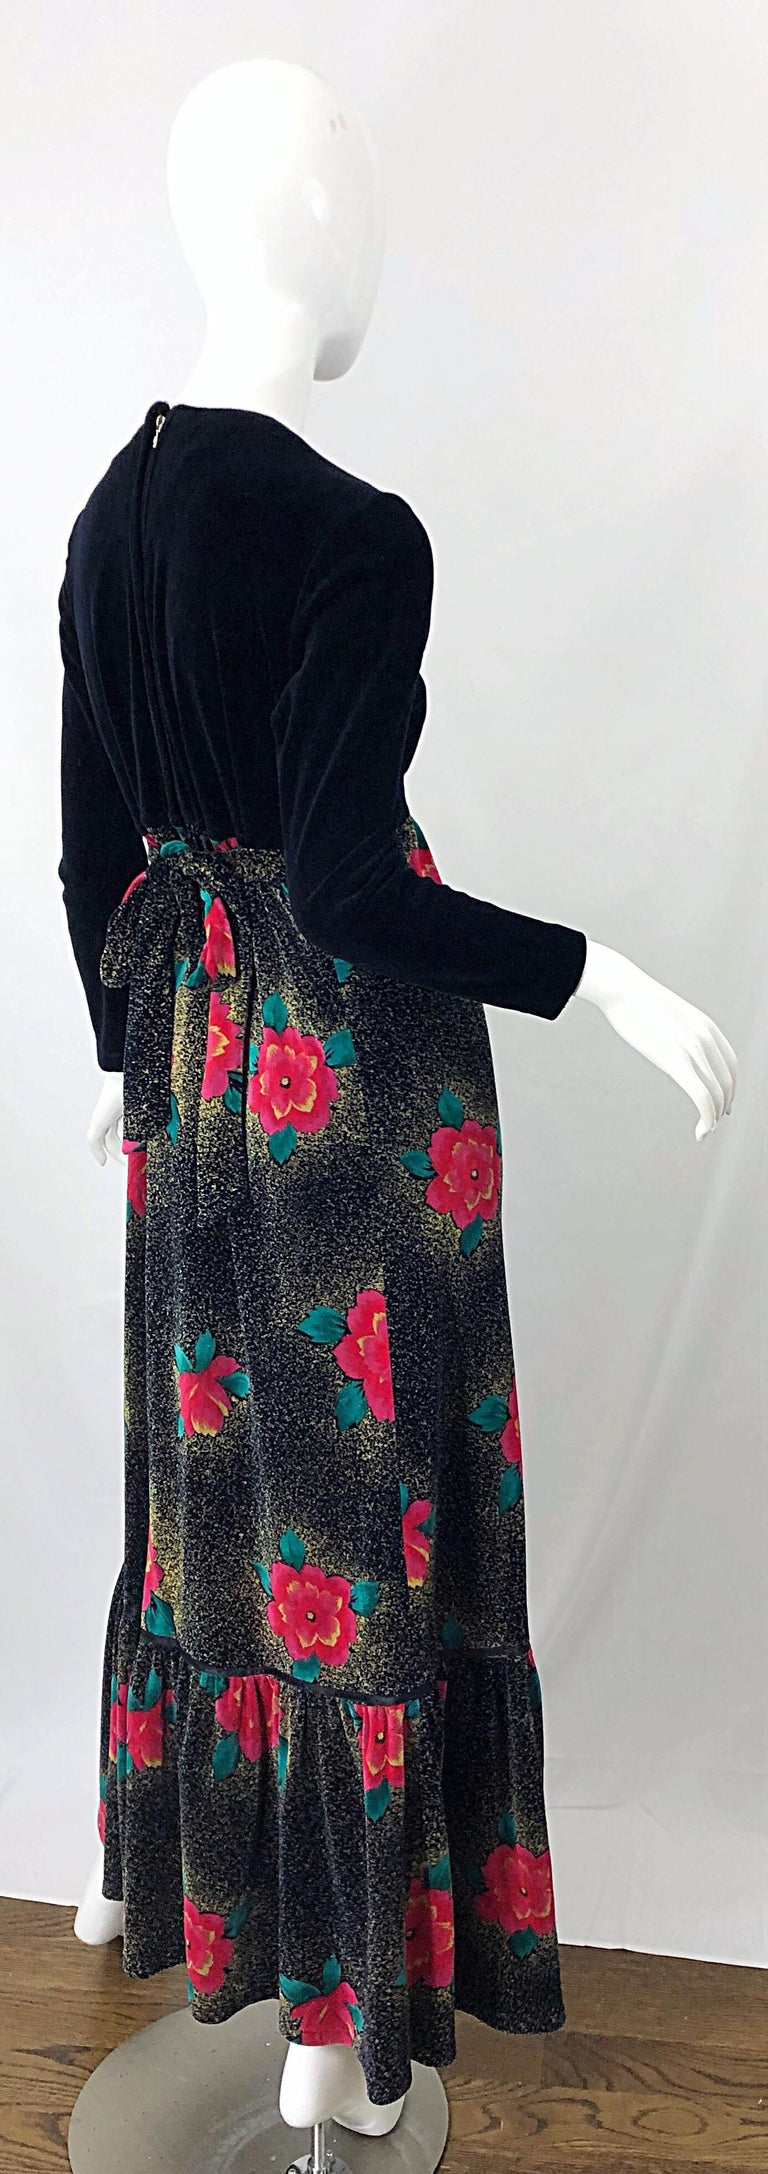 1970s Poinsettia Print Embroidered Beaded Velvet Velour Holiday Maxi Dress Gown In Excellent Condition For Sale In Chicago, IL